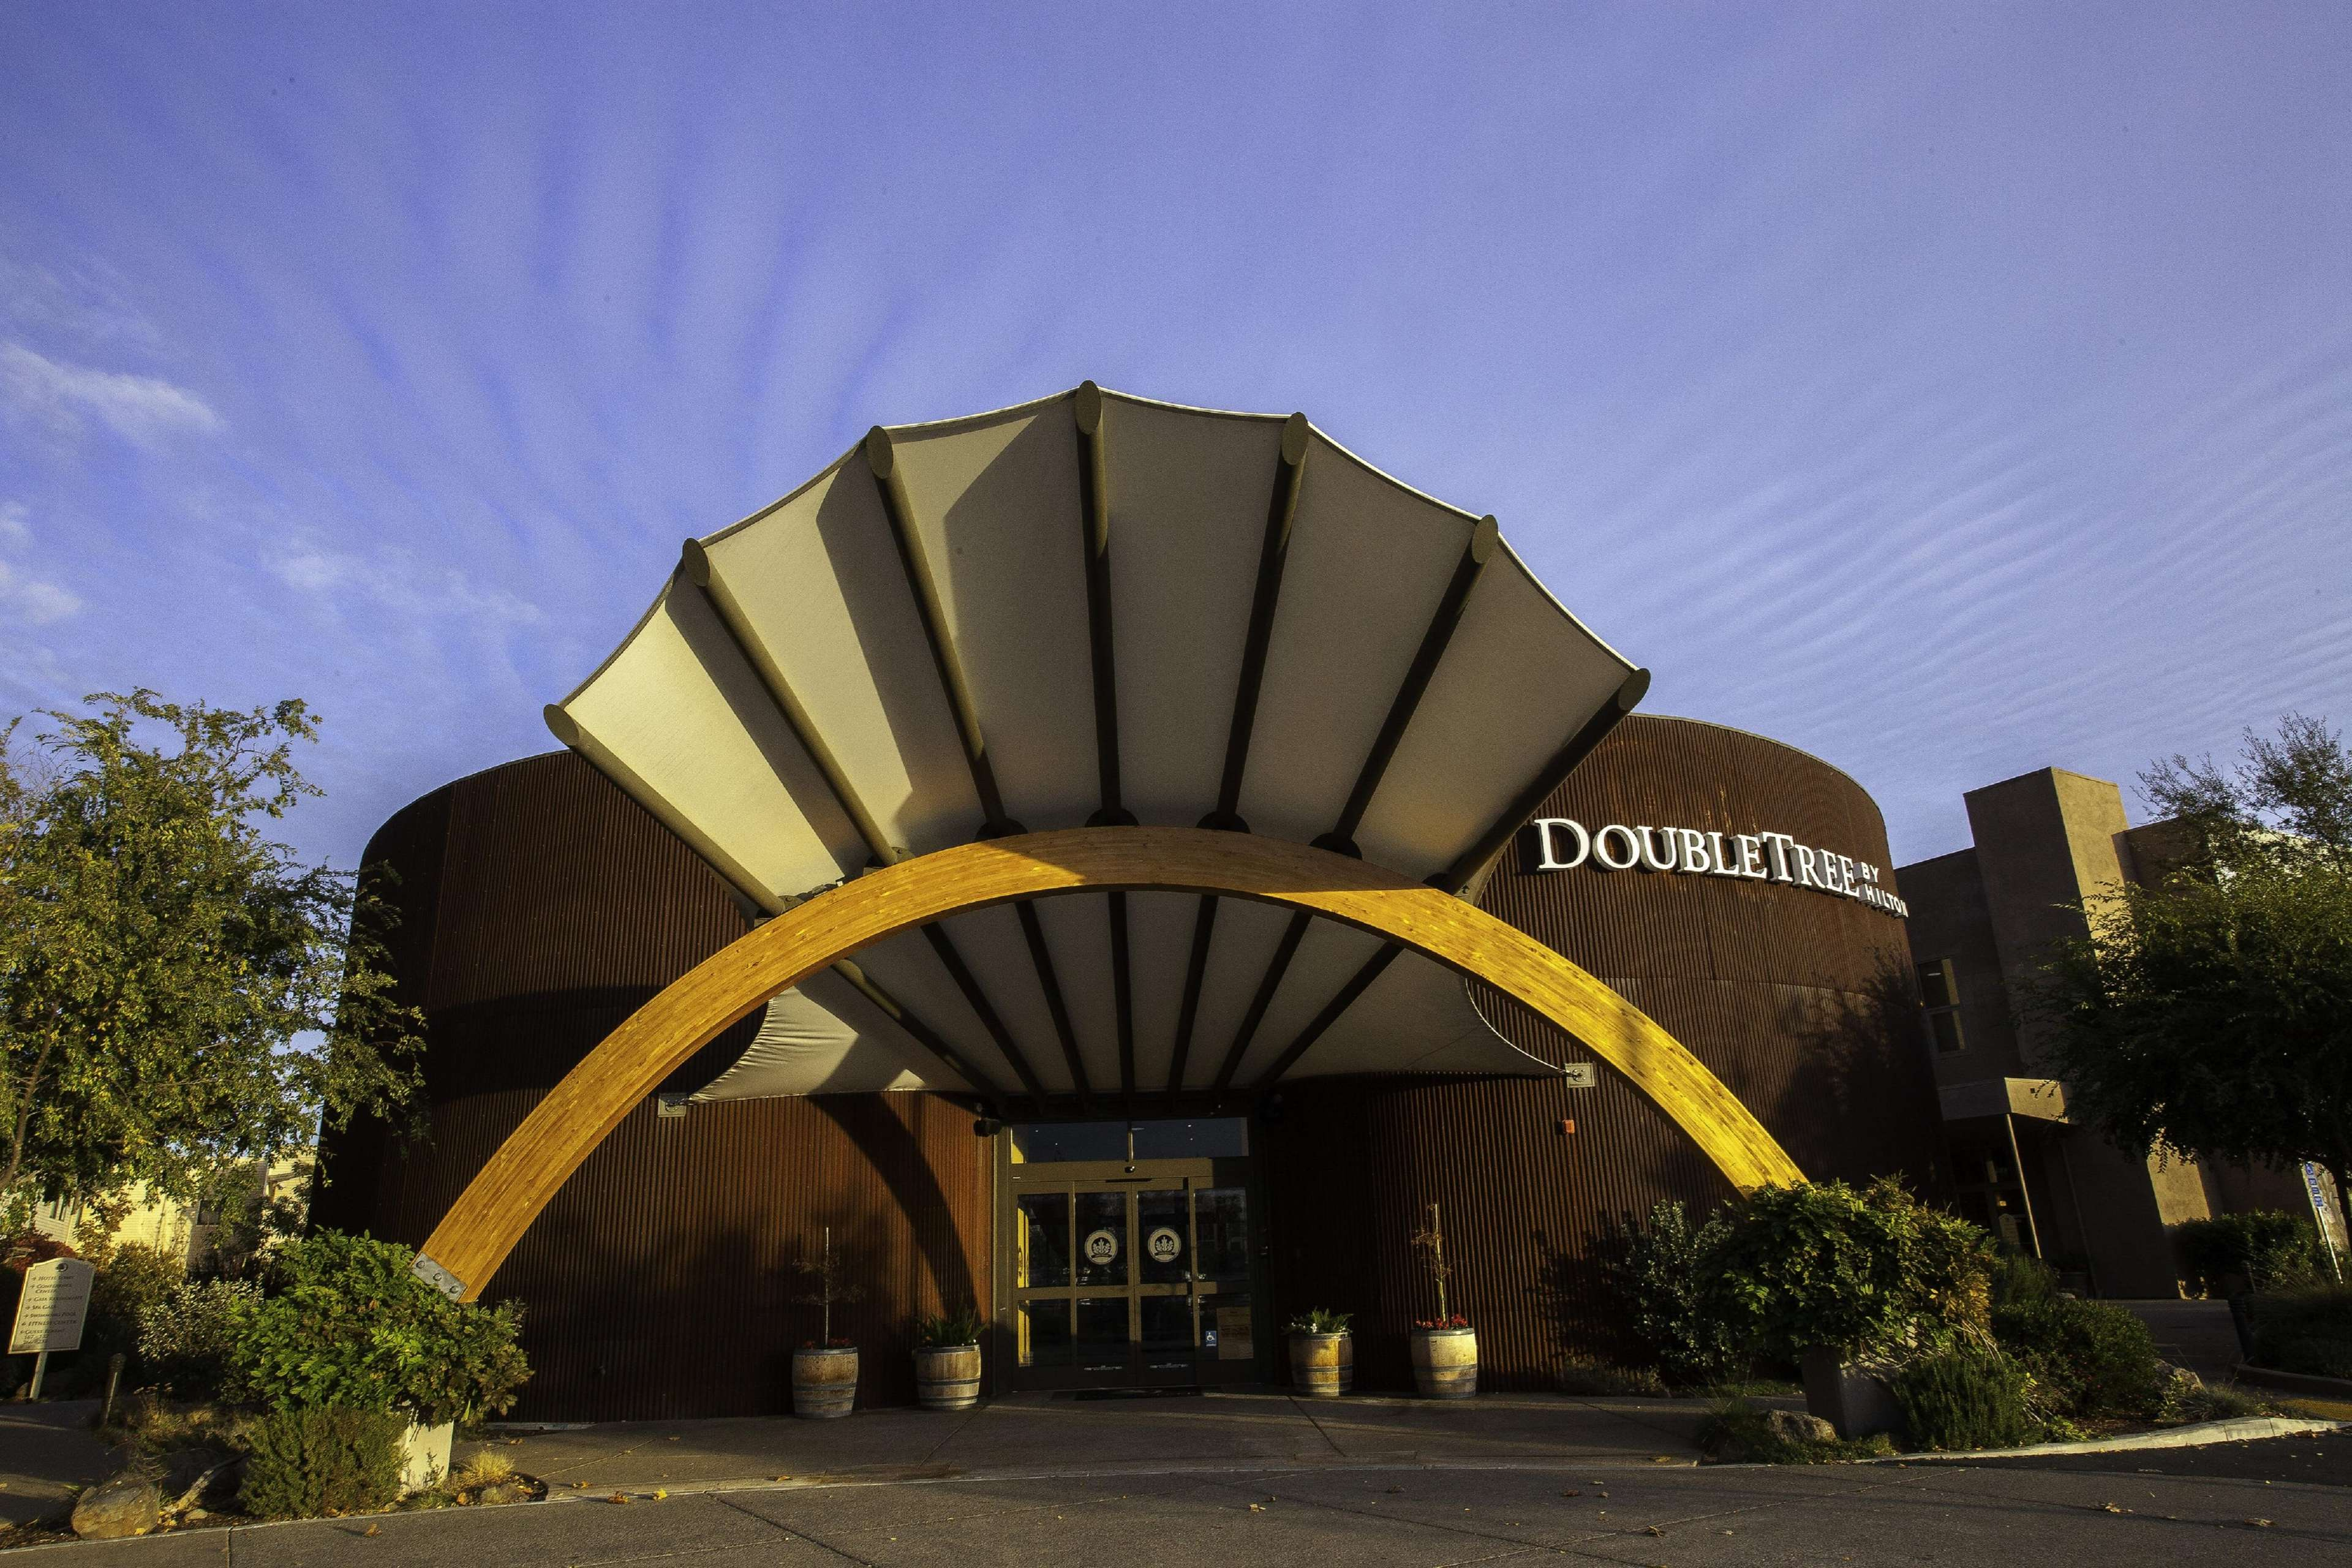 DoubleTree by Hilton Hotel & Spa Napa Valley - American Canyon image 0